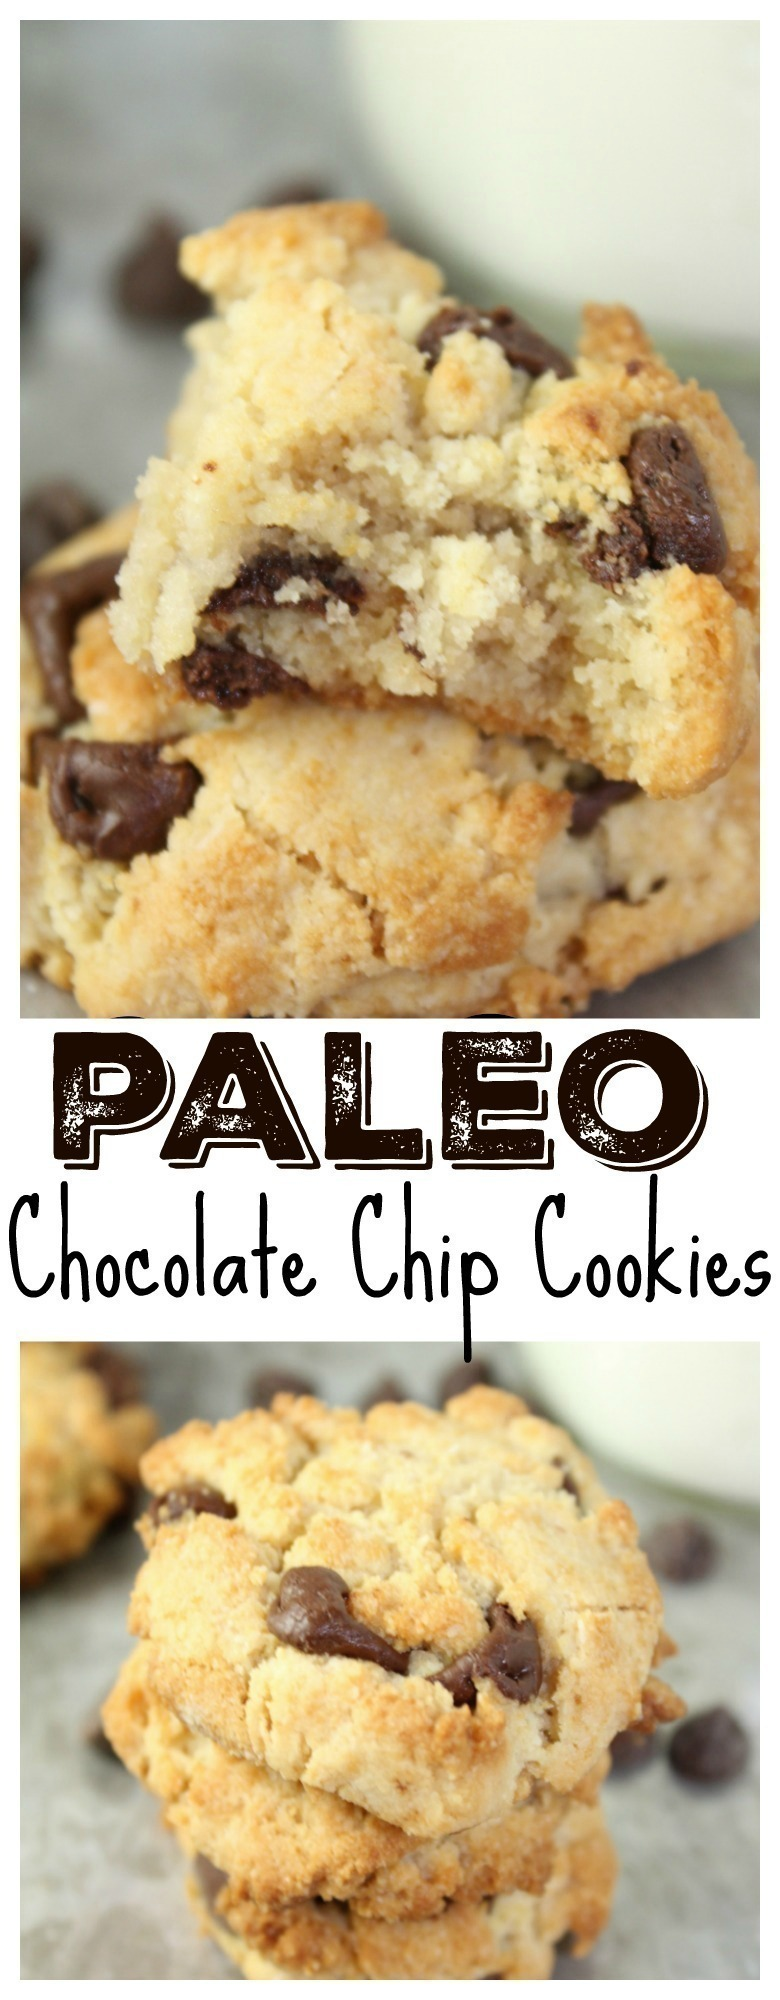 A healthier alternative to the traditional chocolate chip cookie - gluten-free, grain-free, and no refined sugar. They are soft and chocolatey!